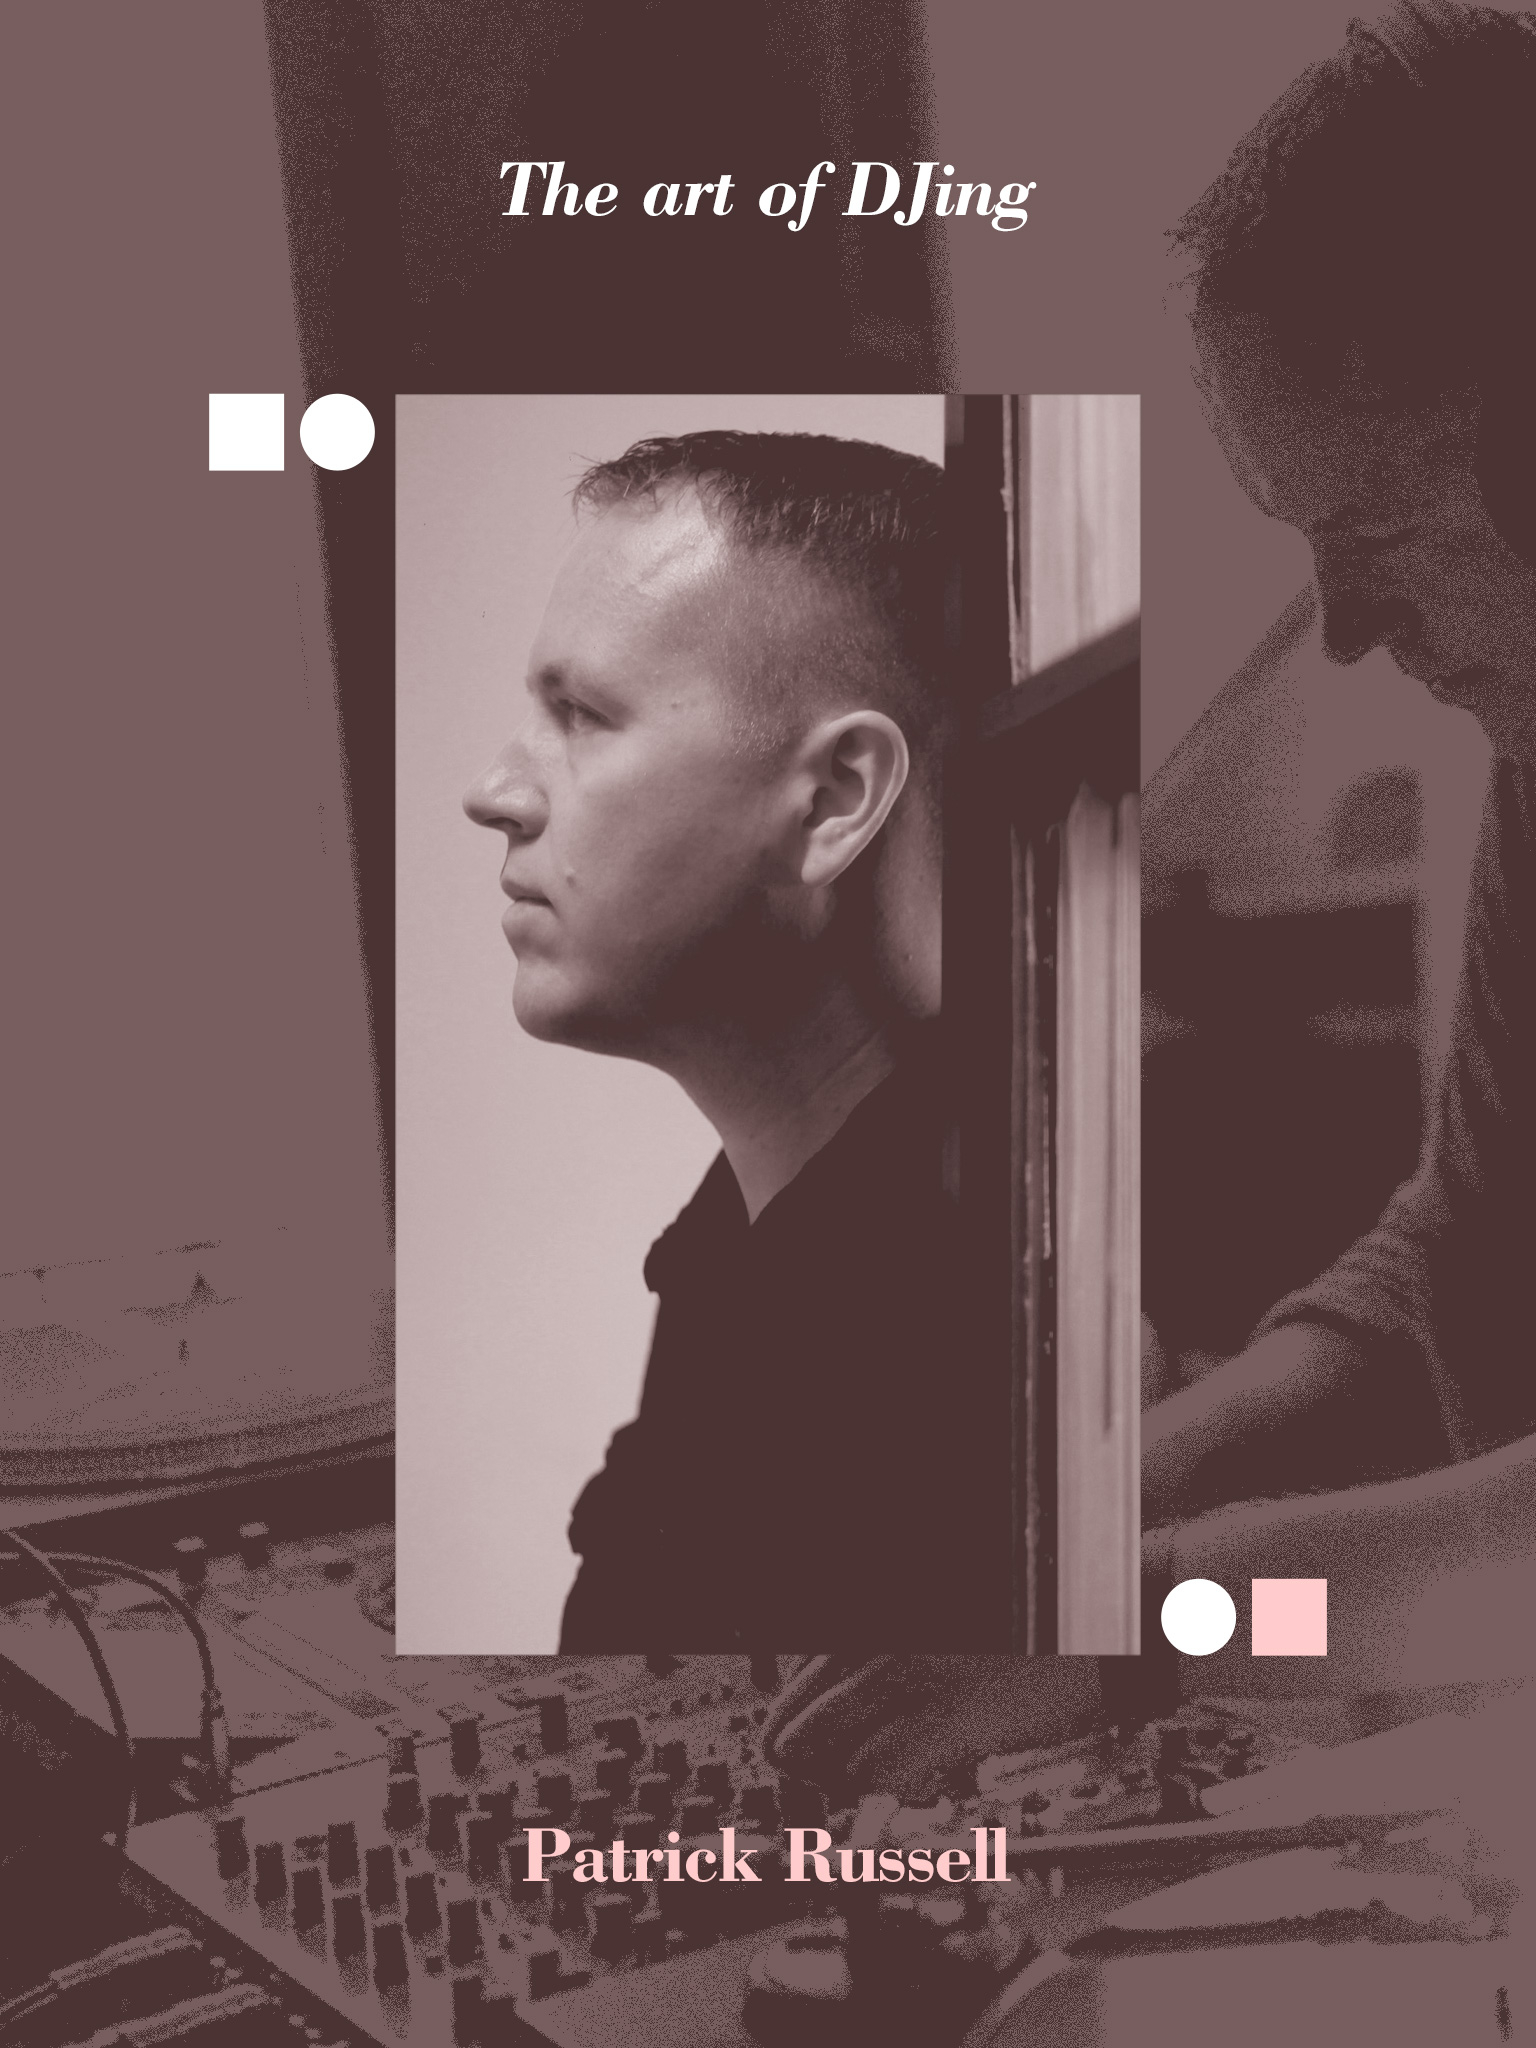 The art of DJing: Patrick Russell